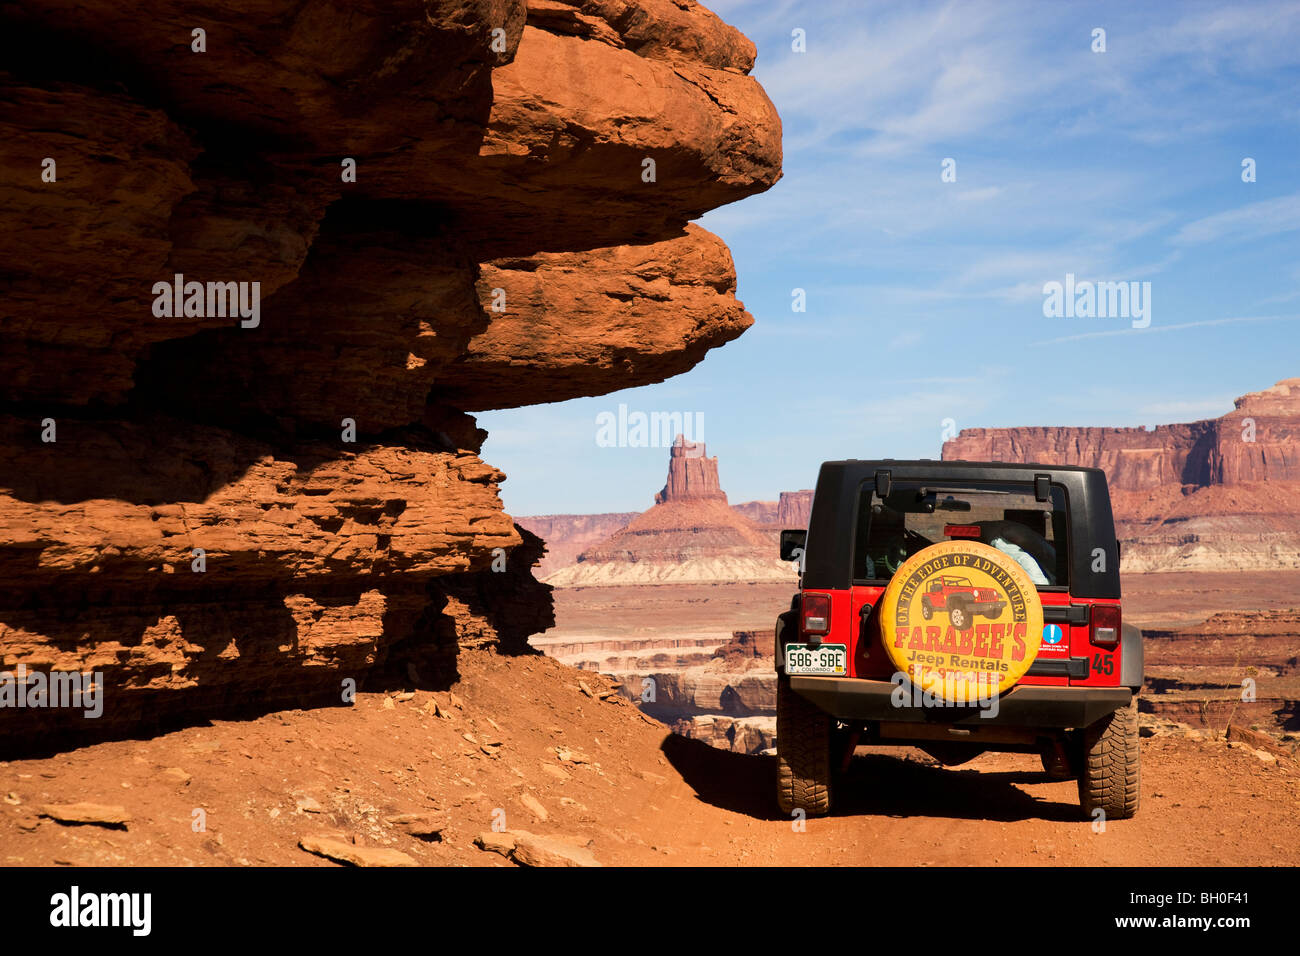 A jeep on the White Rim Trail, Island in the Sky District, Canyonlands National Park, near Moab, Utah. - Stock Image